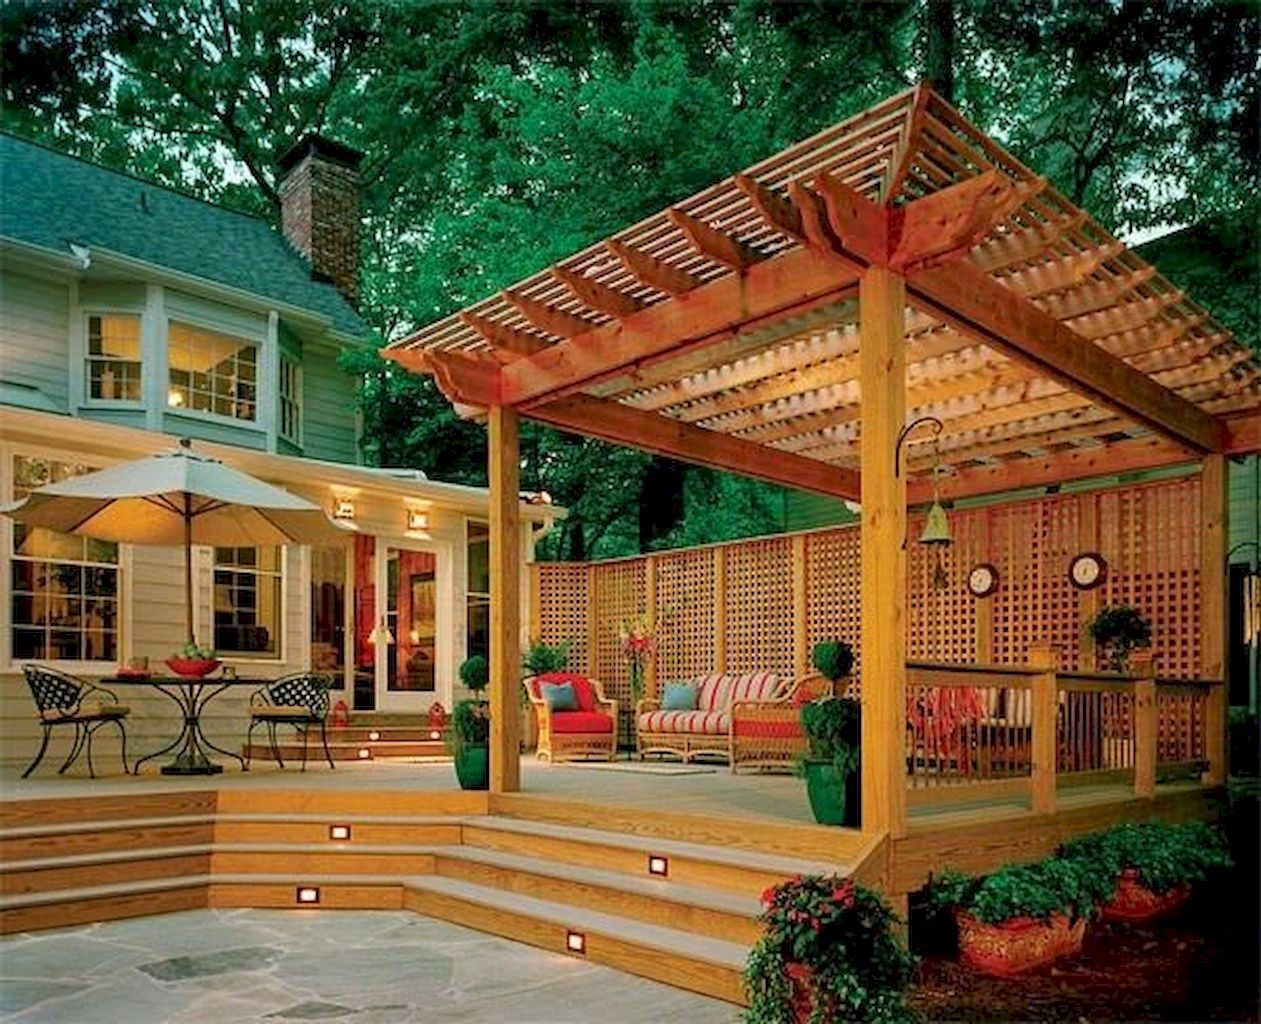 Jazz up your landscaping and outdoor space with a bit of